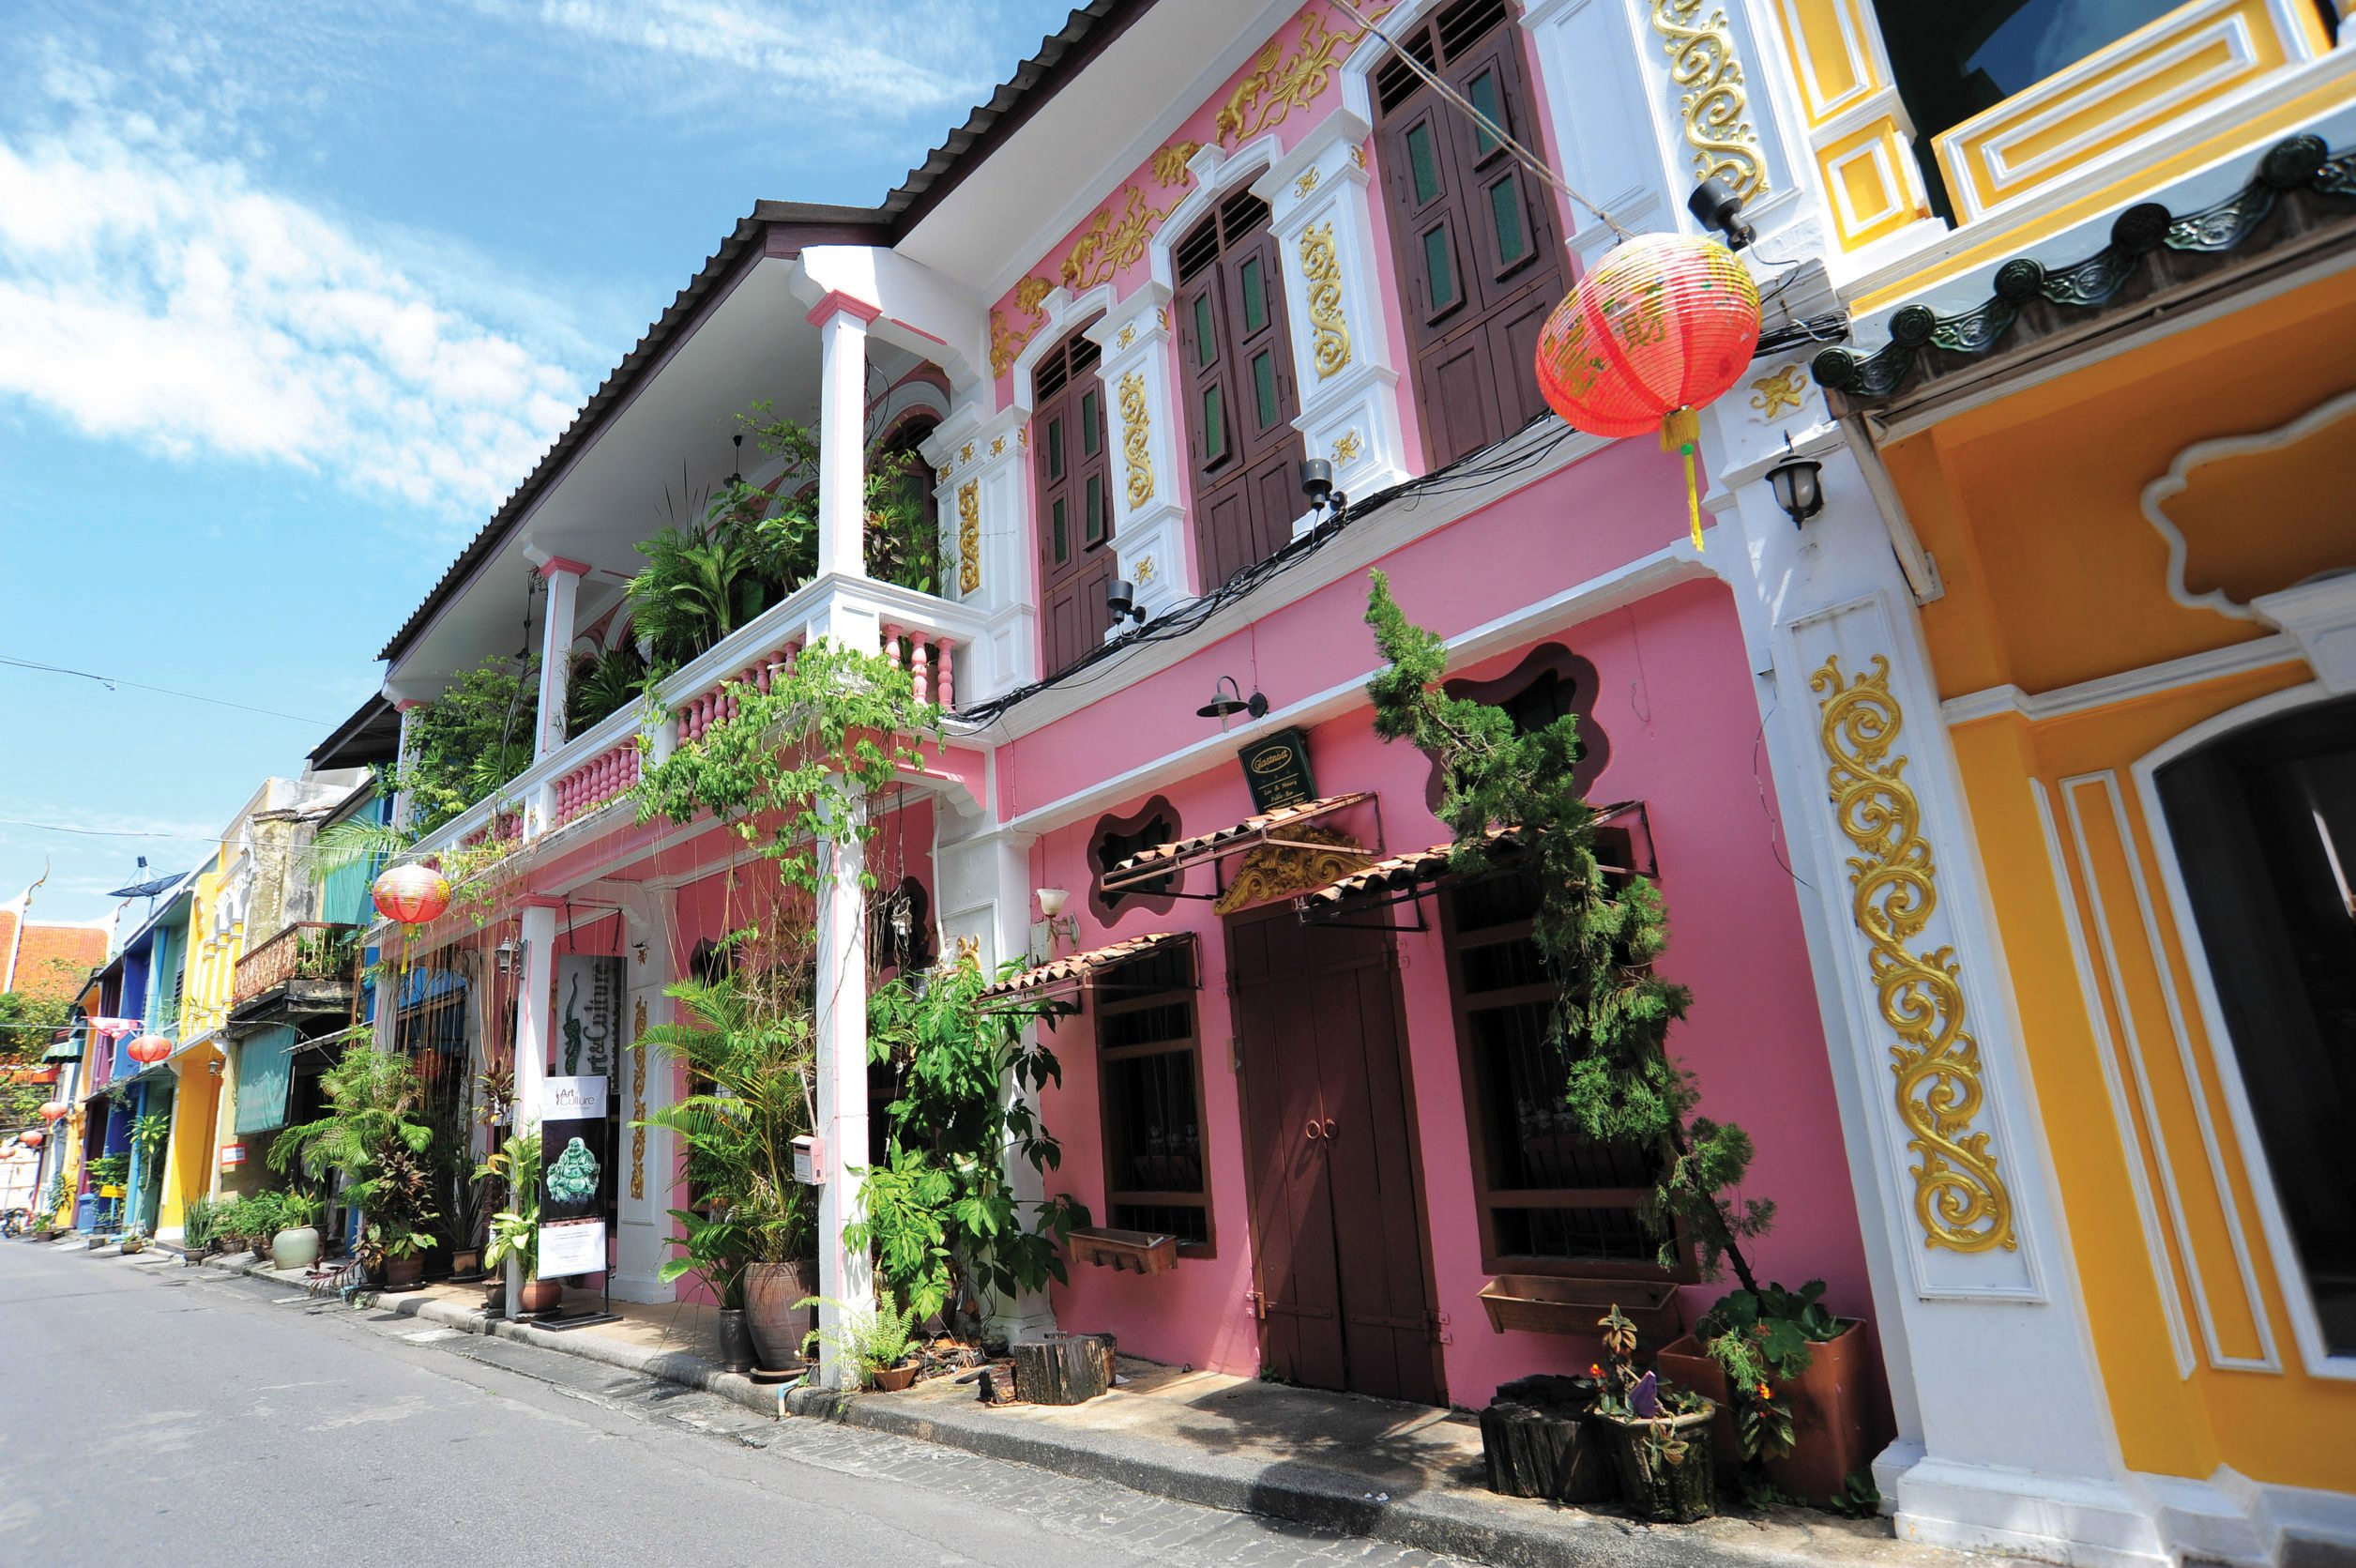 Old Phuket Town Is Home to the City's Most Instagram-worthy Streets (and Food) - FASHION Magazine